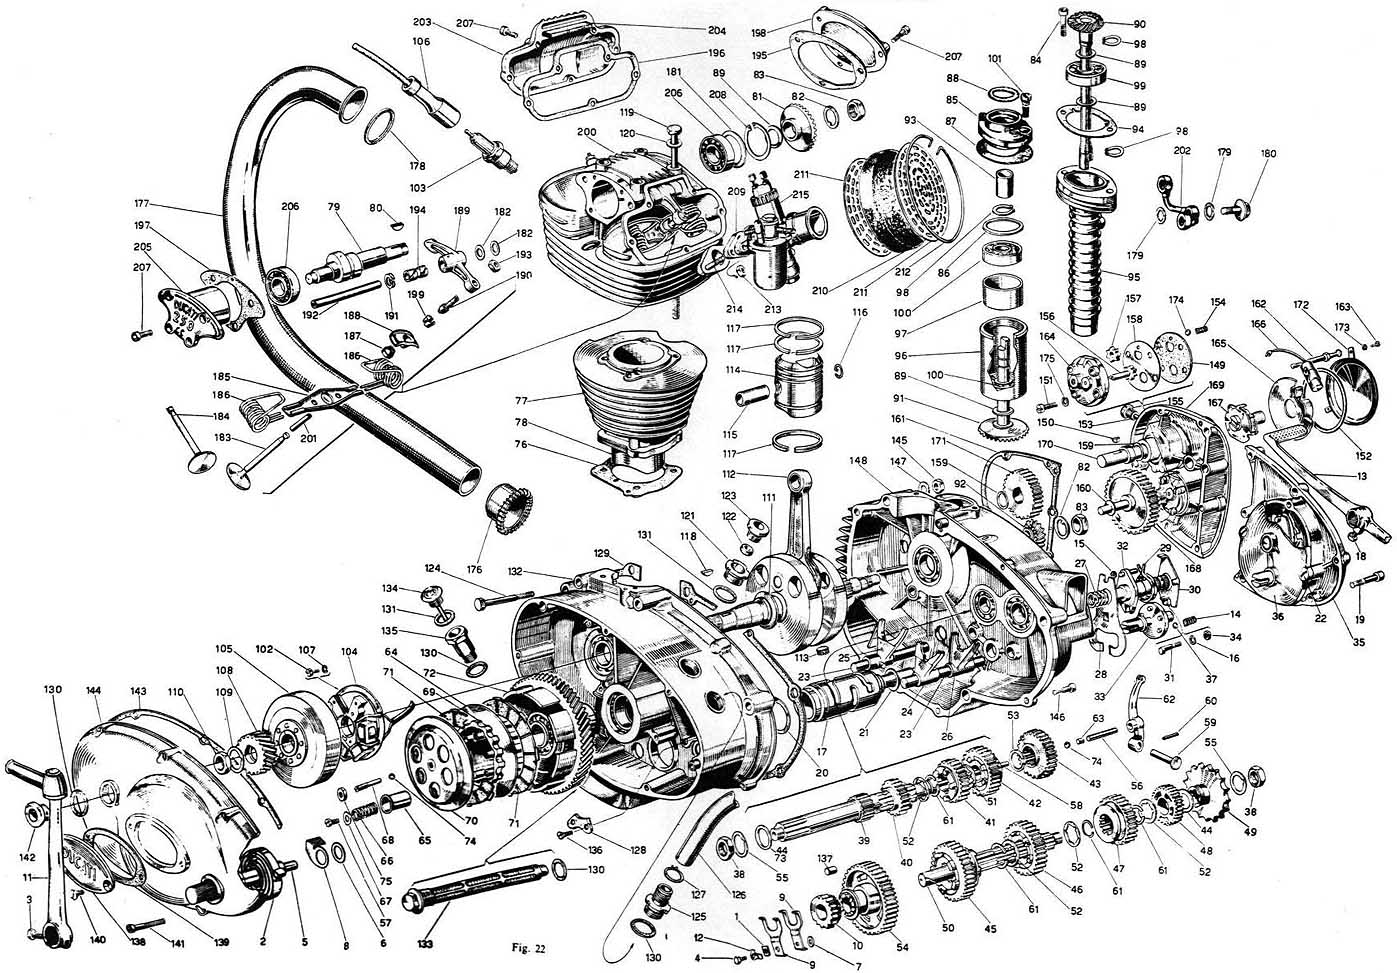 Barking Mad Speed Shop These Are Great Diagrams Dog Wiring Diagram